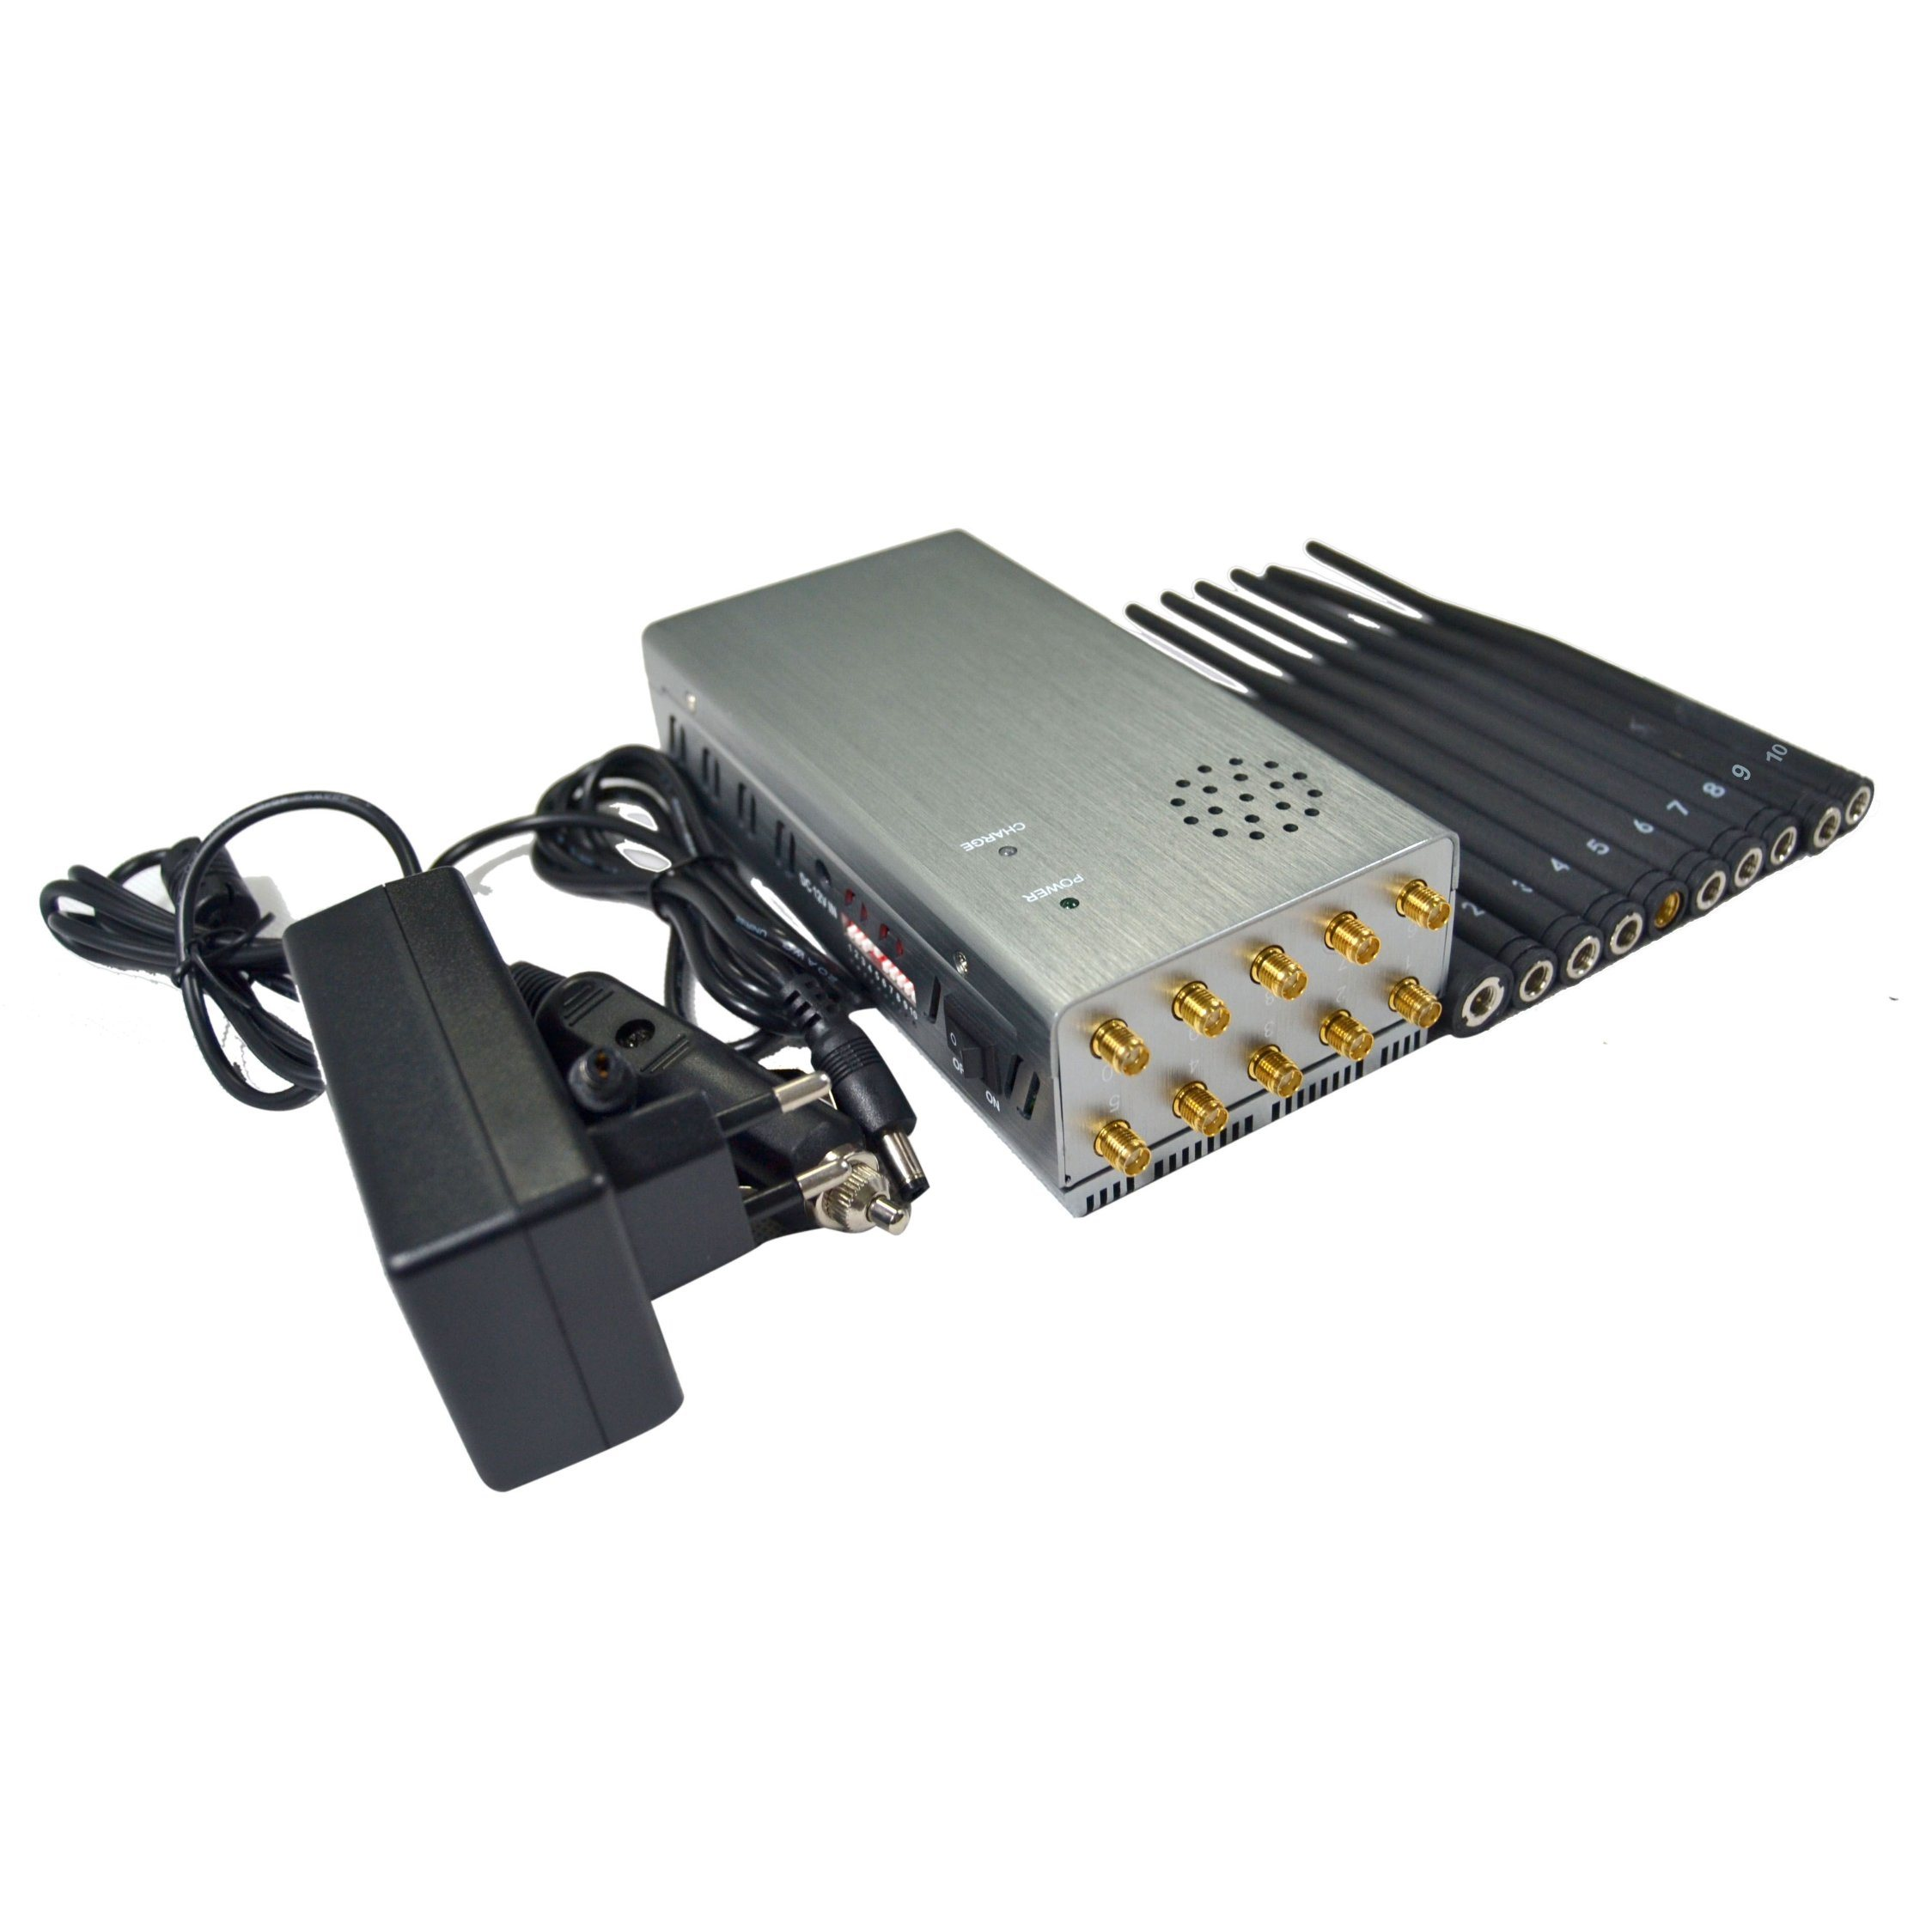 jamming signal ns3 group - China The King of Portable Jammers with 8000mA and 10 Antennas Including 2g 3G 4G 5g GPS 433MHz315MHz868MHz WiFi - China 8000mA Battery Jammer, Large Volume Power Signal Blocker